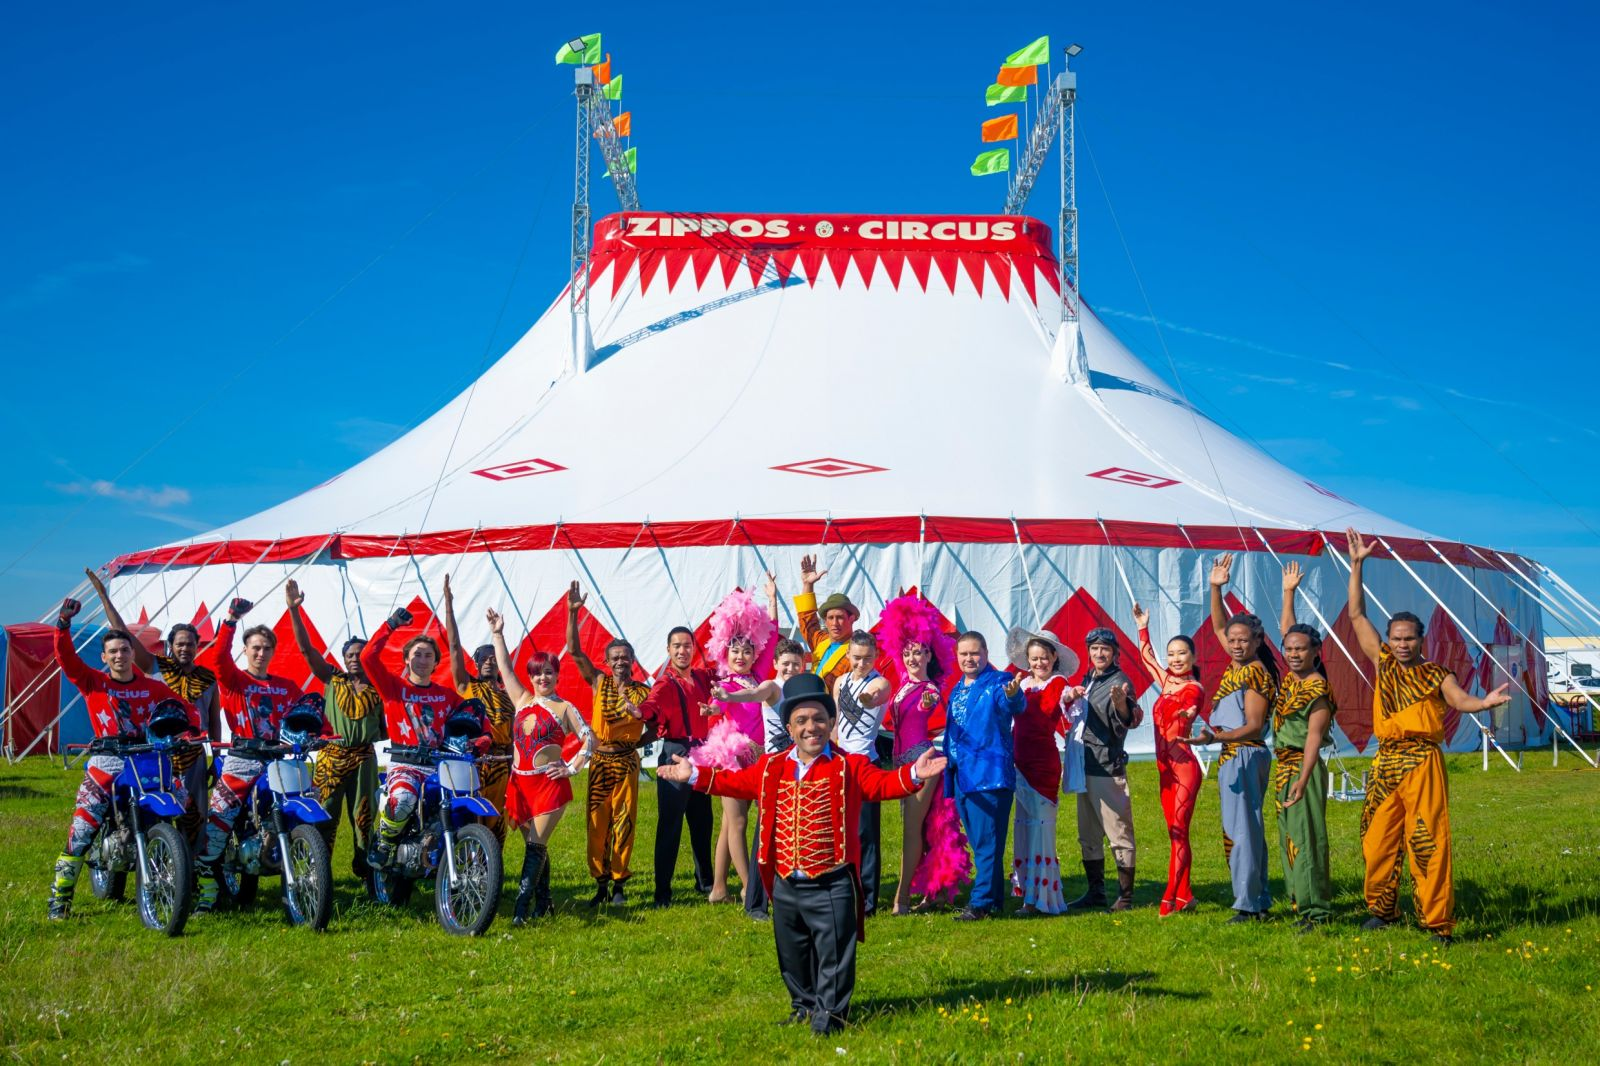 Zippos Circus Performers. Photographer credit: Piet-Hein Out